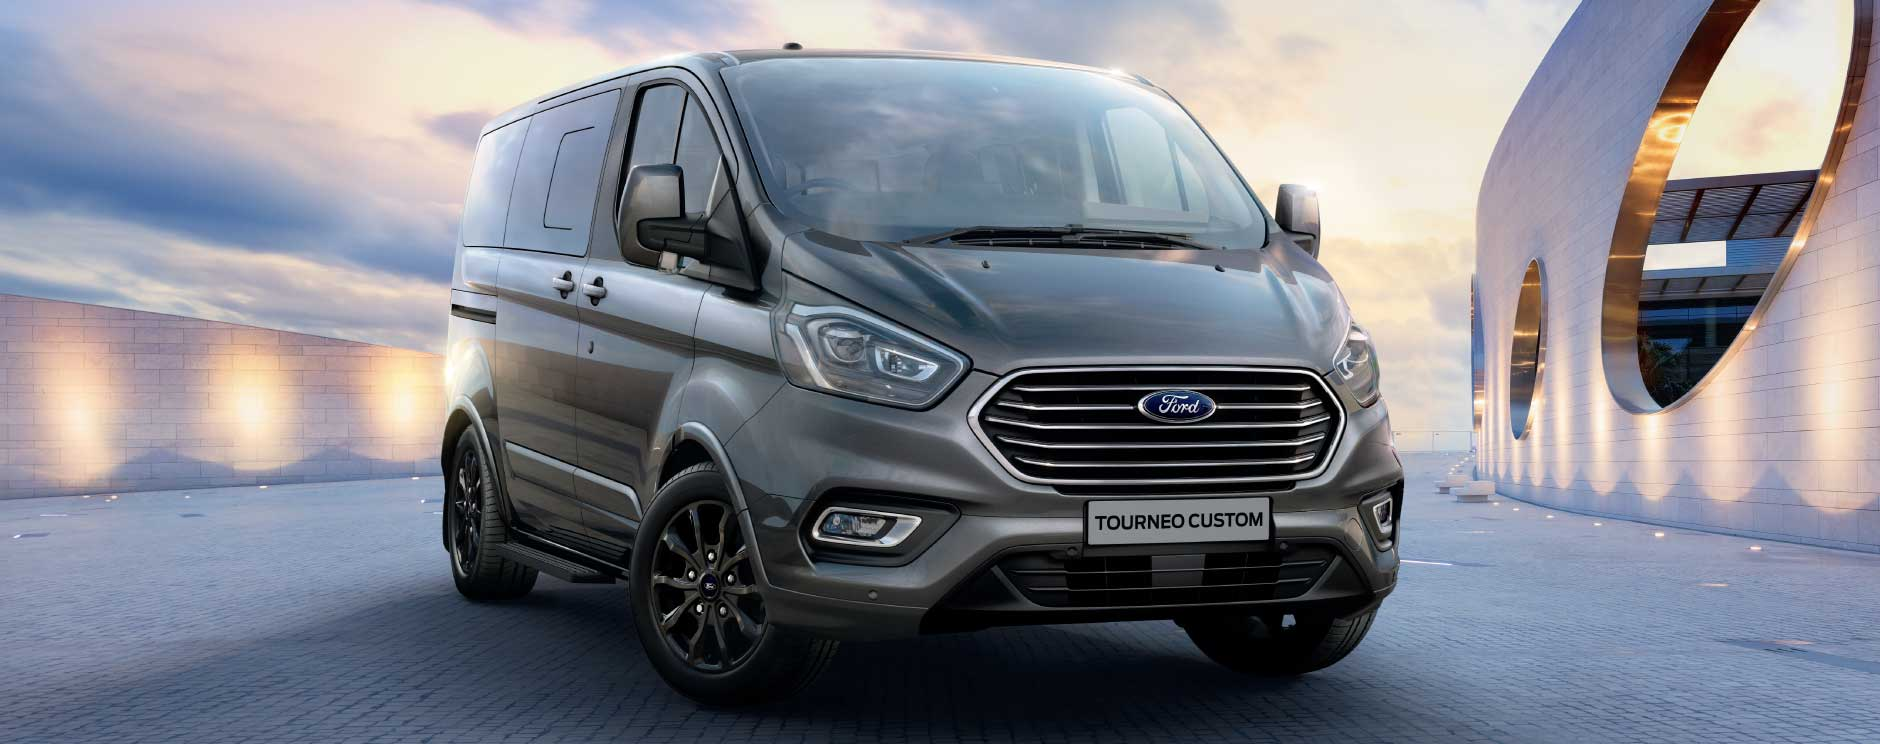 Ford Tourneo 1